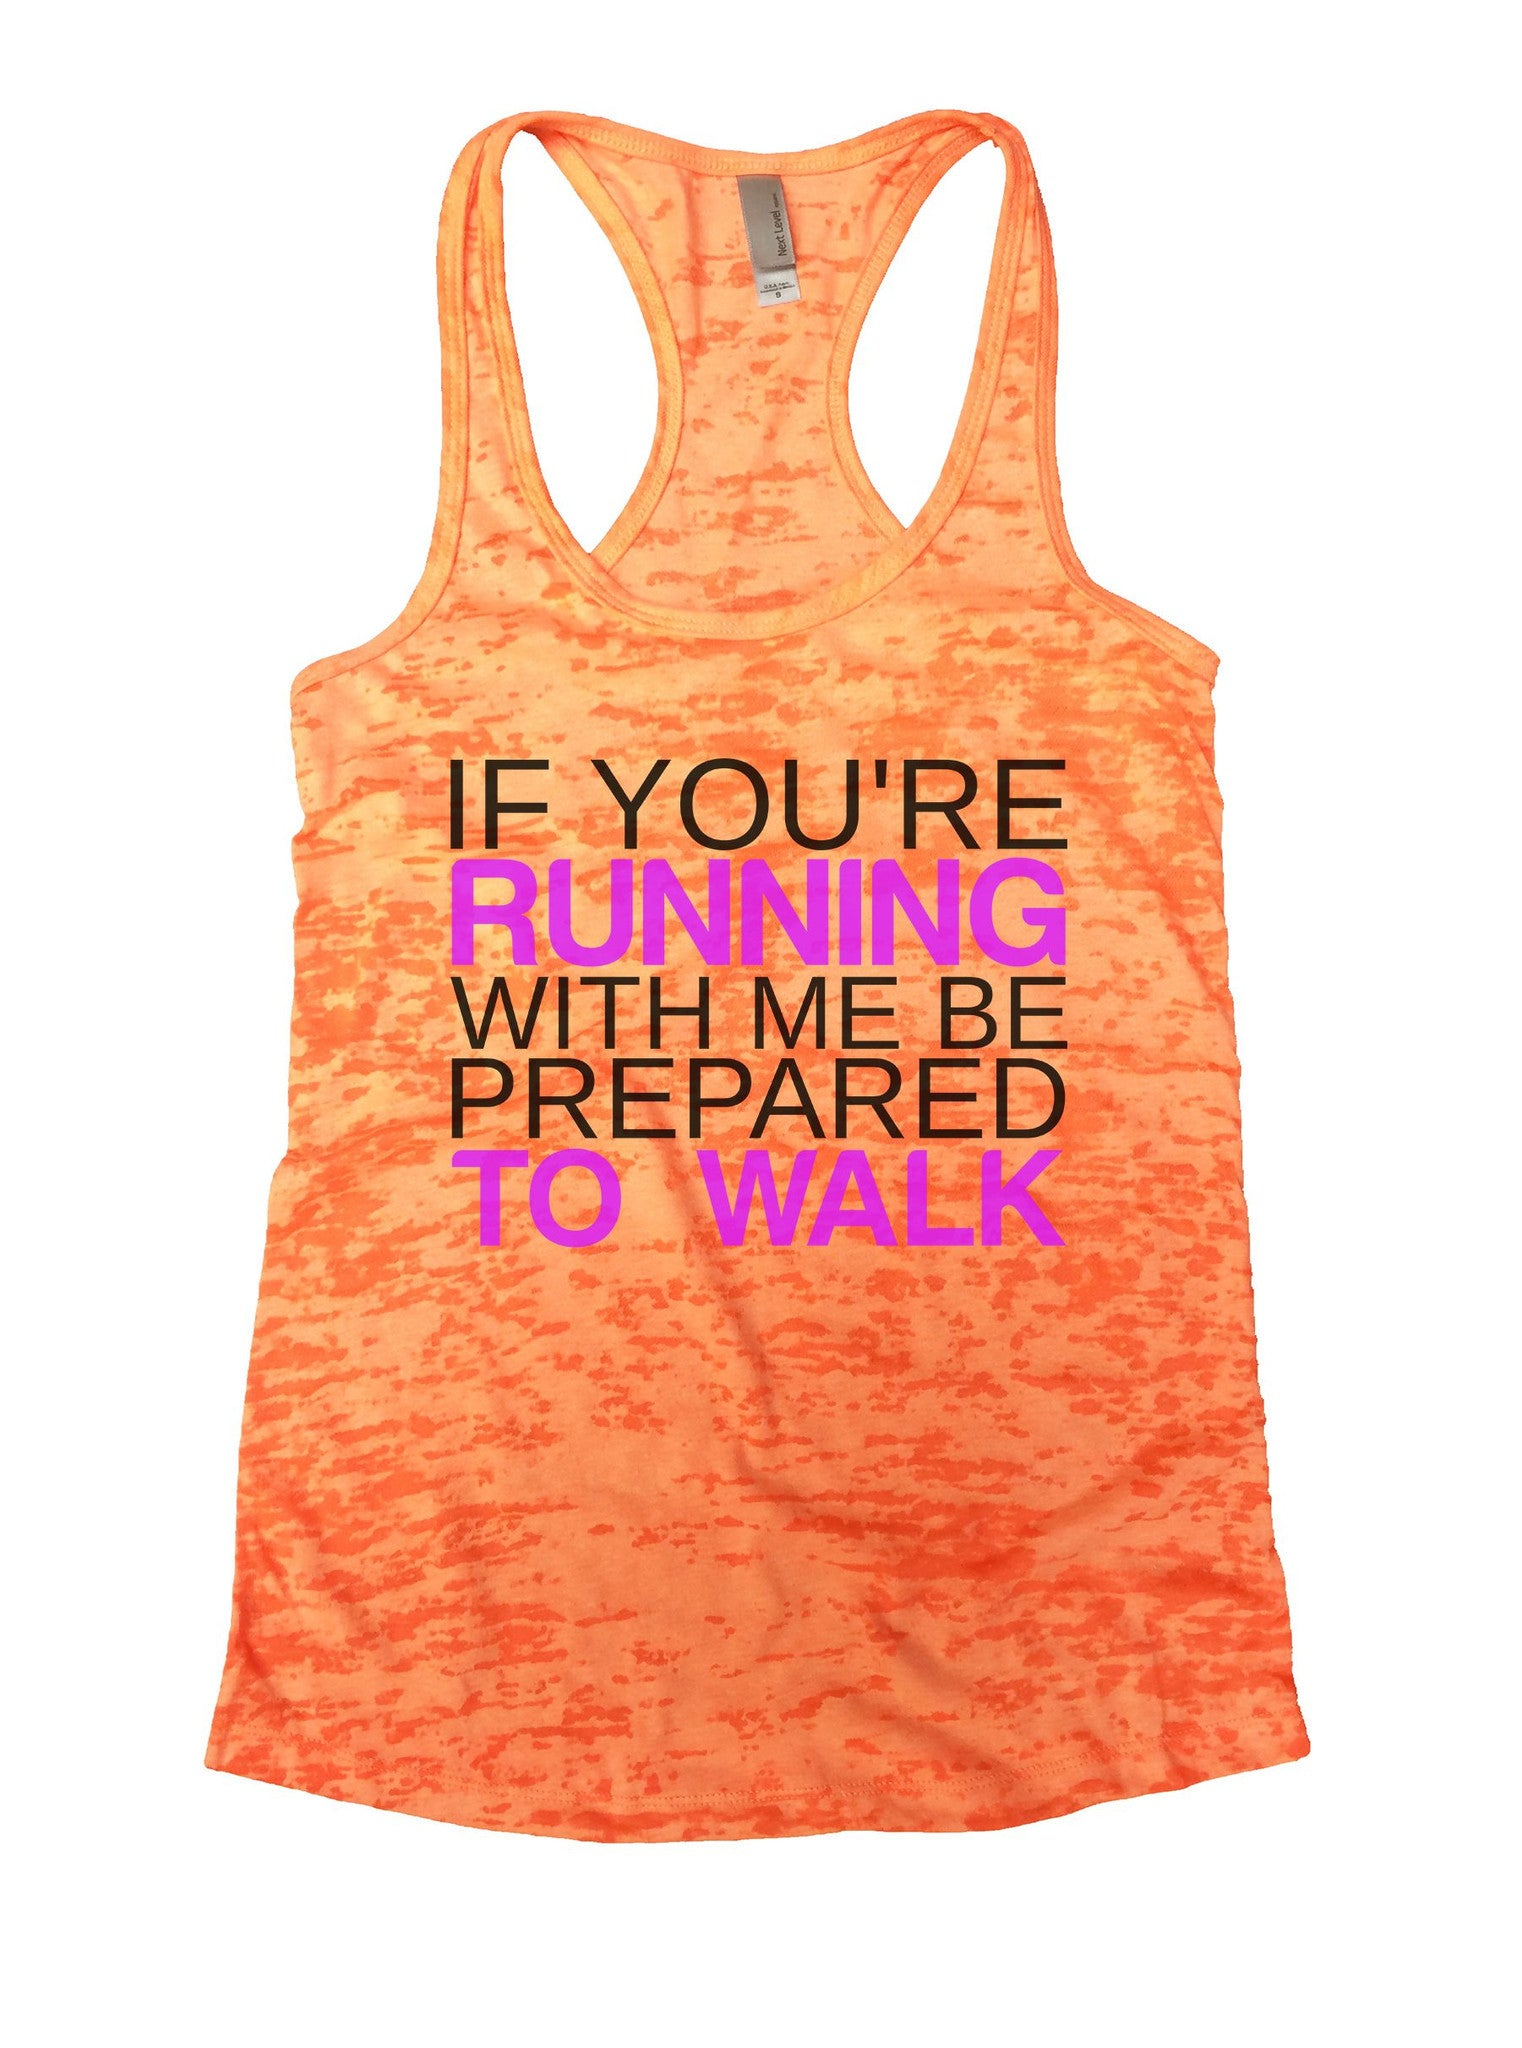 If You're Running With Me Be Prepared To Walk Burnout Tank Top By BurnoutTankTops.com - 858 - Funny Shirts Tank Tops Burnouts and Triblends  - 3